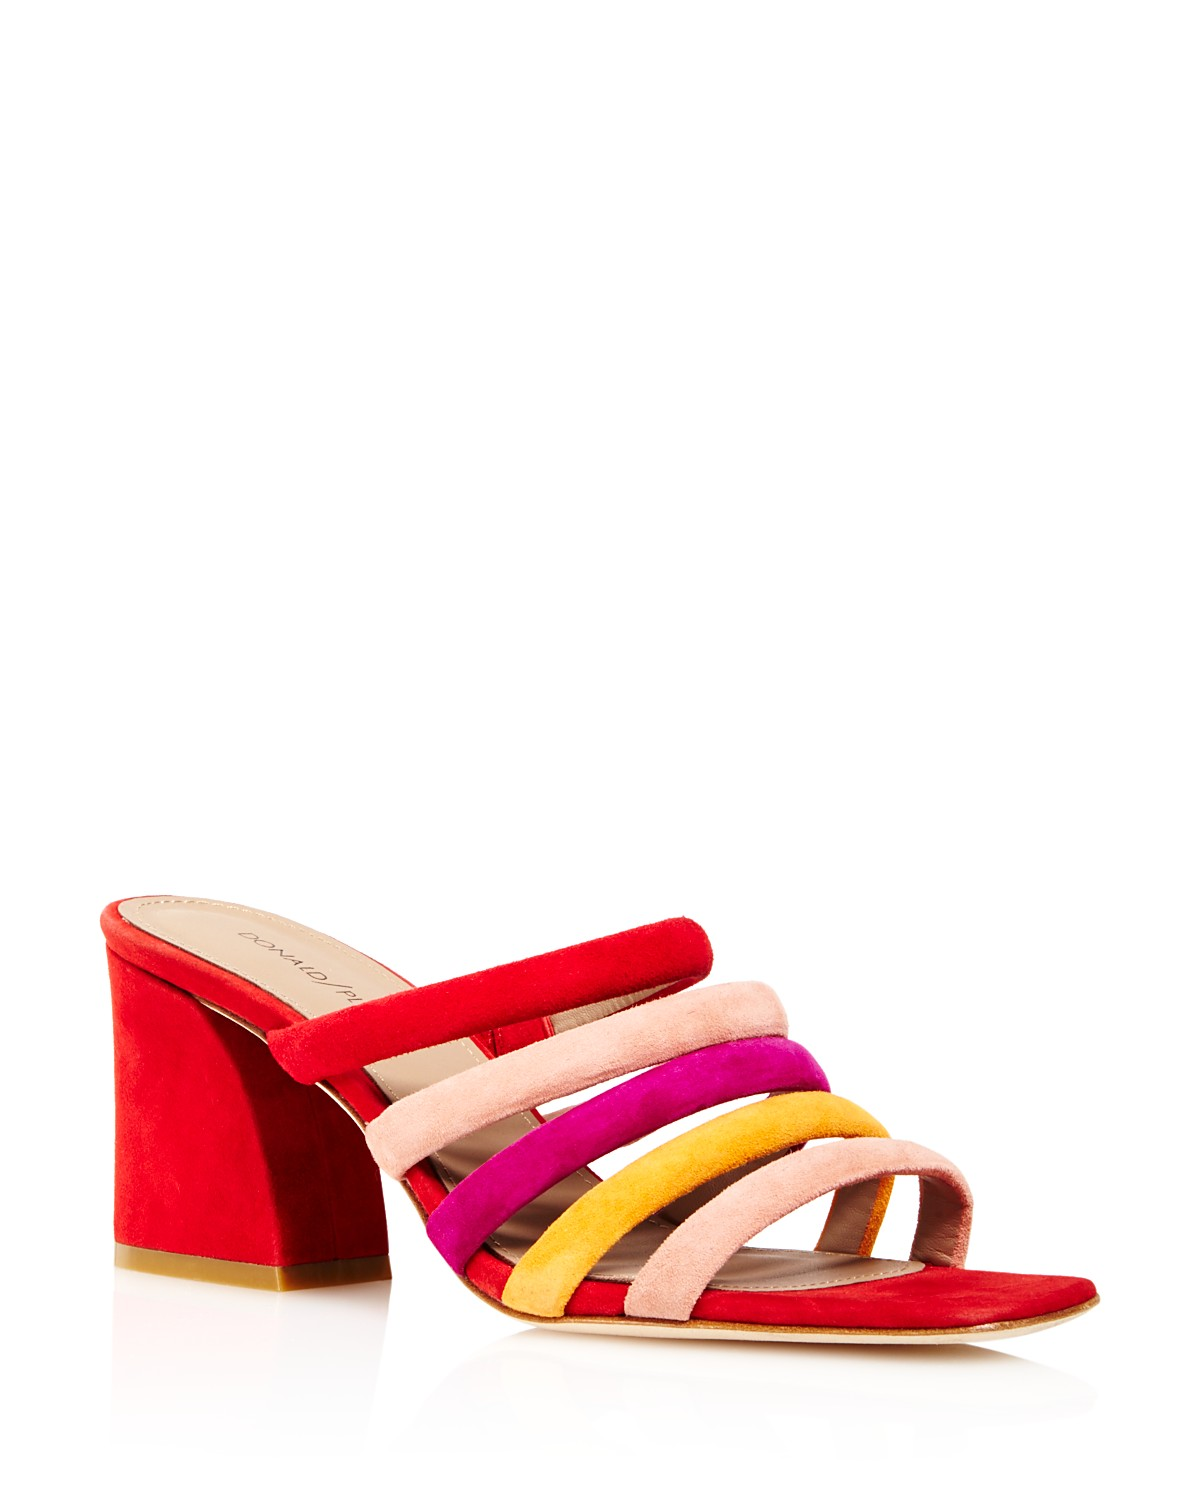 discount Inexpensive for nice cheap price Donald Pliner Wes Suede Sandal sale wide range of L5wZFb4E